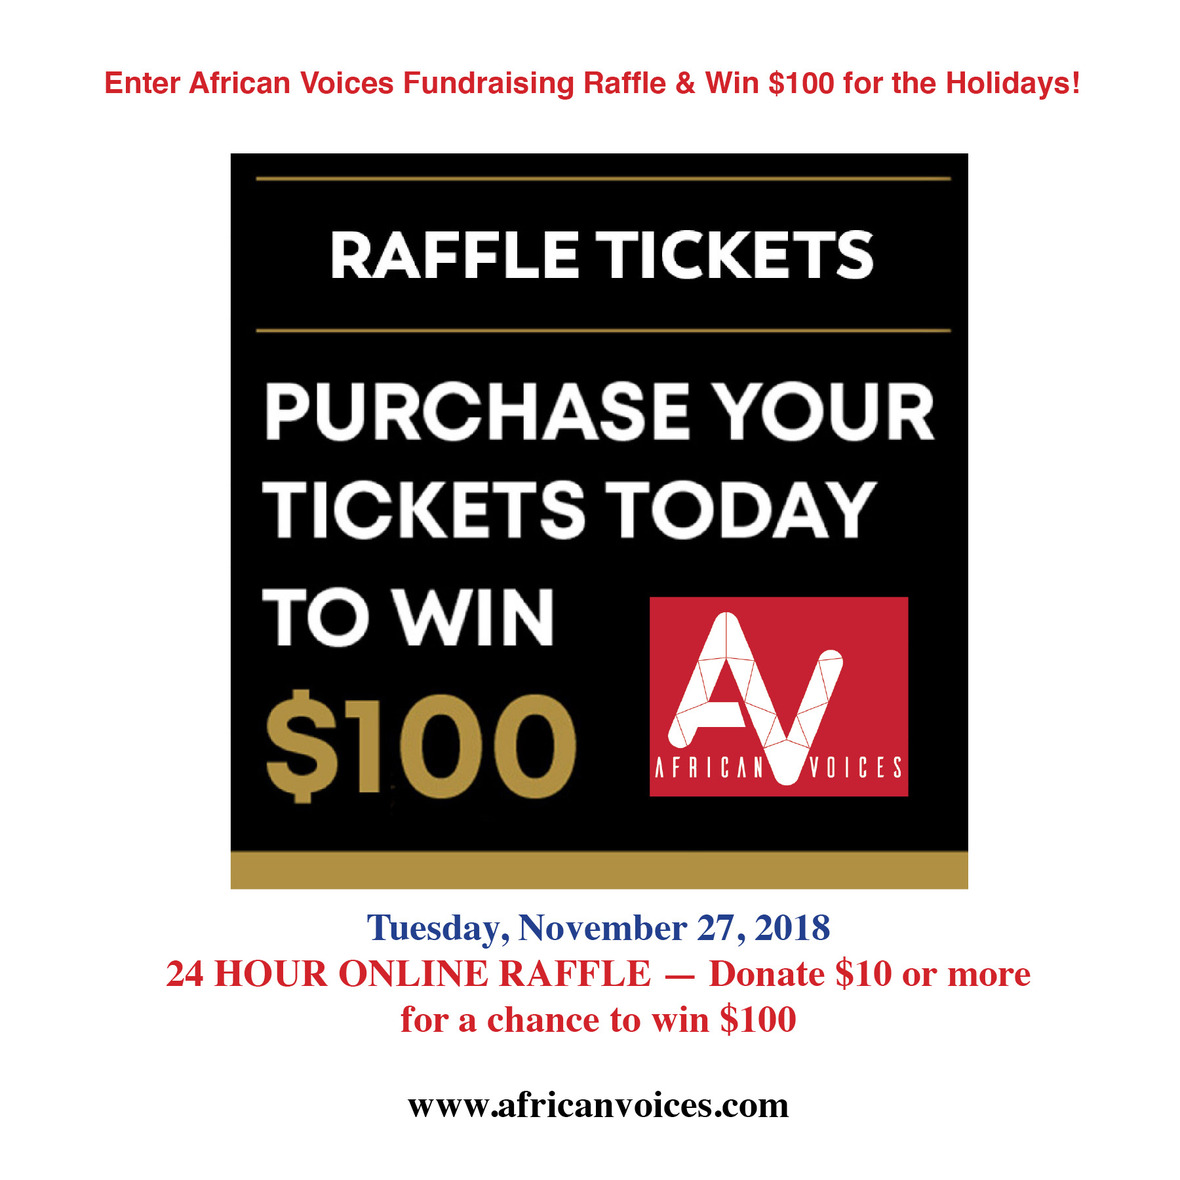 African Voices Community Give Back — Donate $10 to Win $100